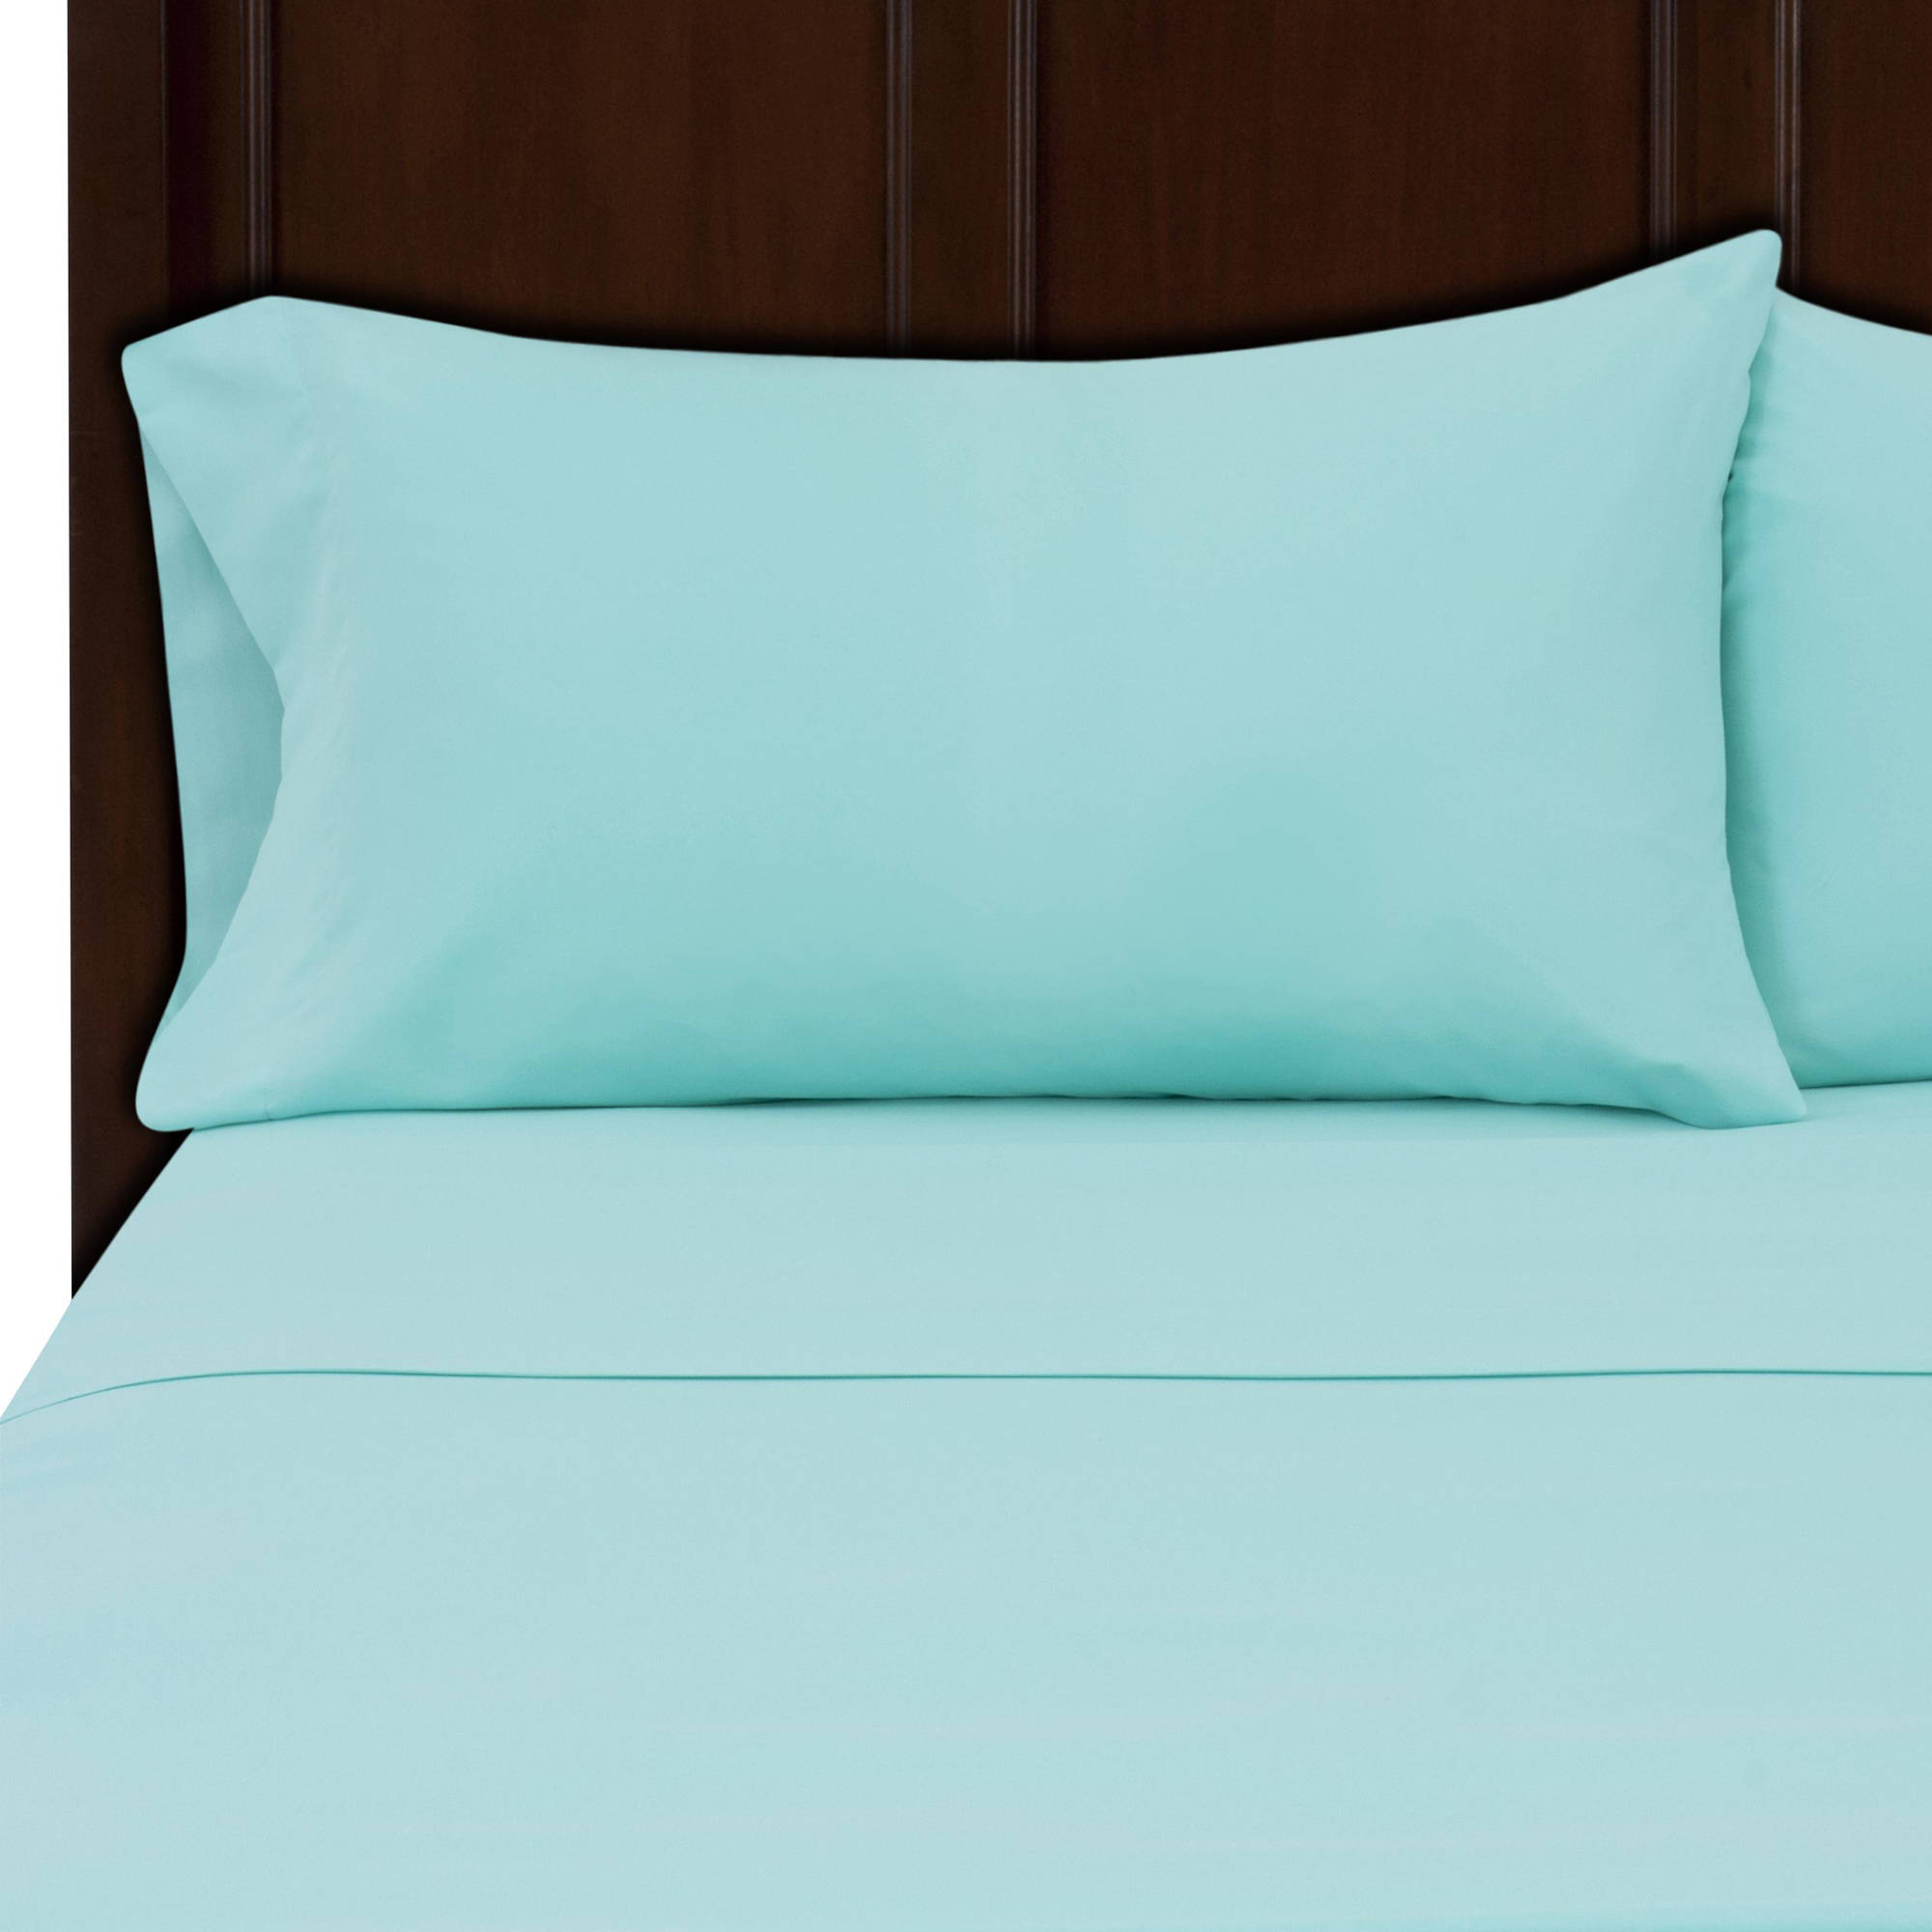 Your Zone Microfiber Sheet Set, Multiple Colors